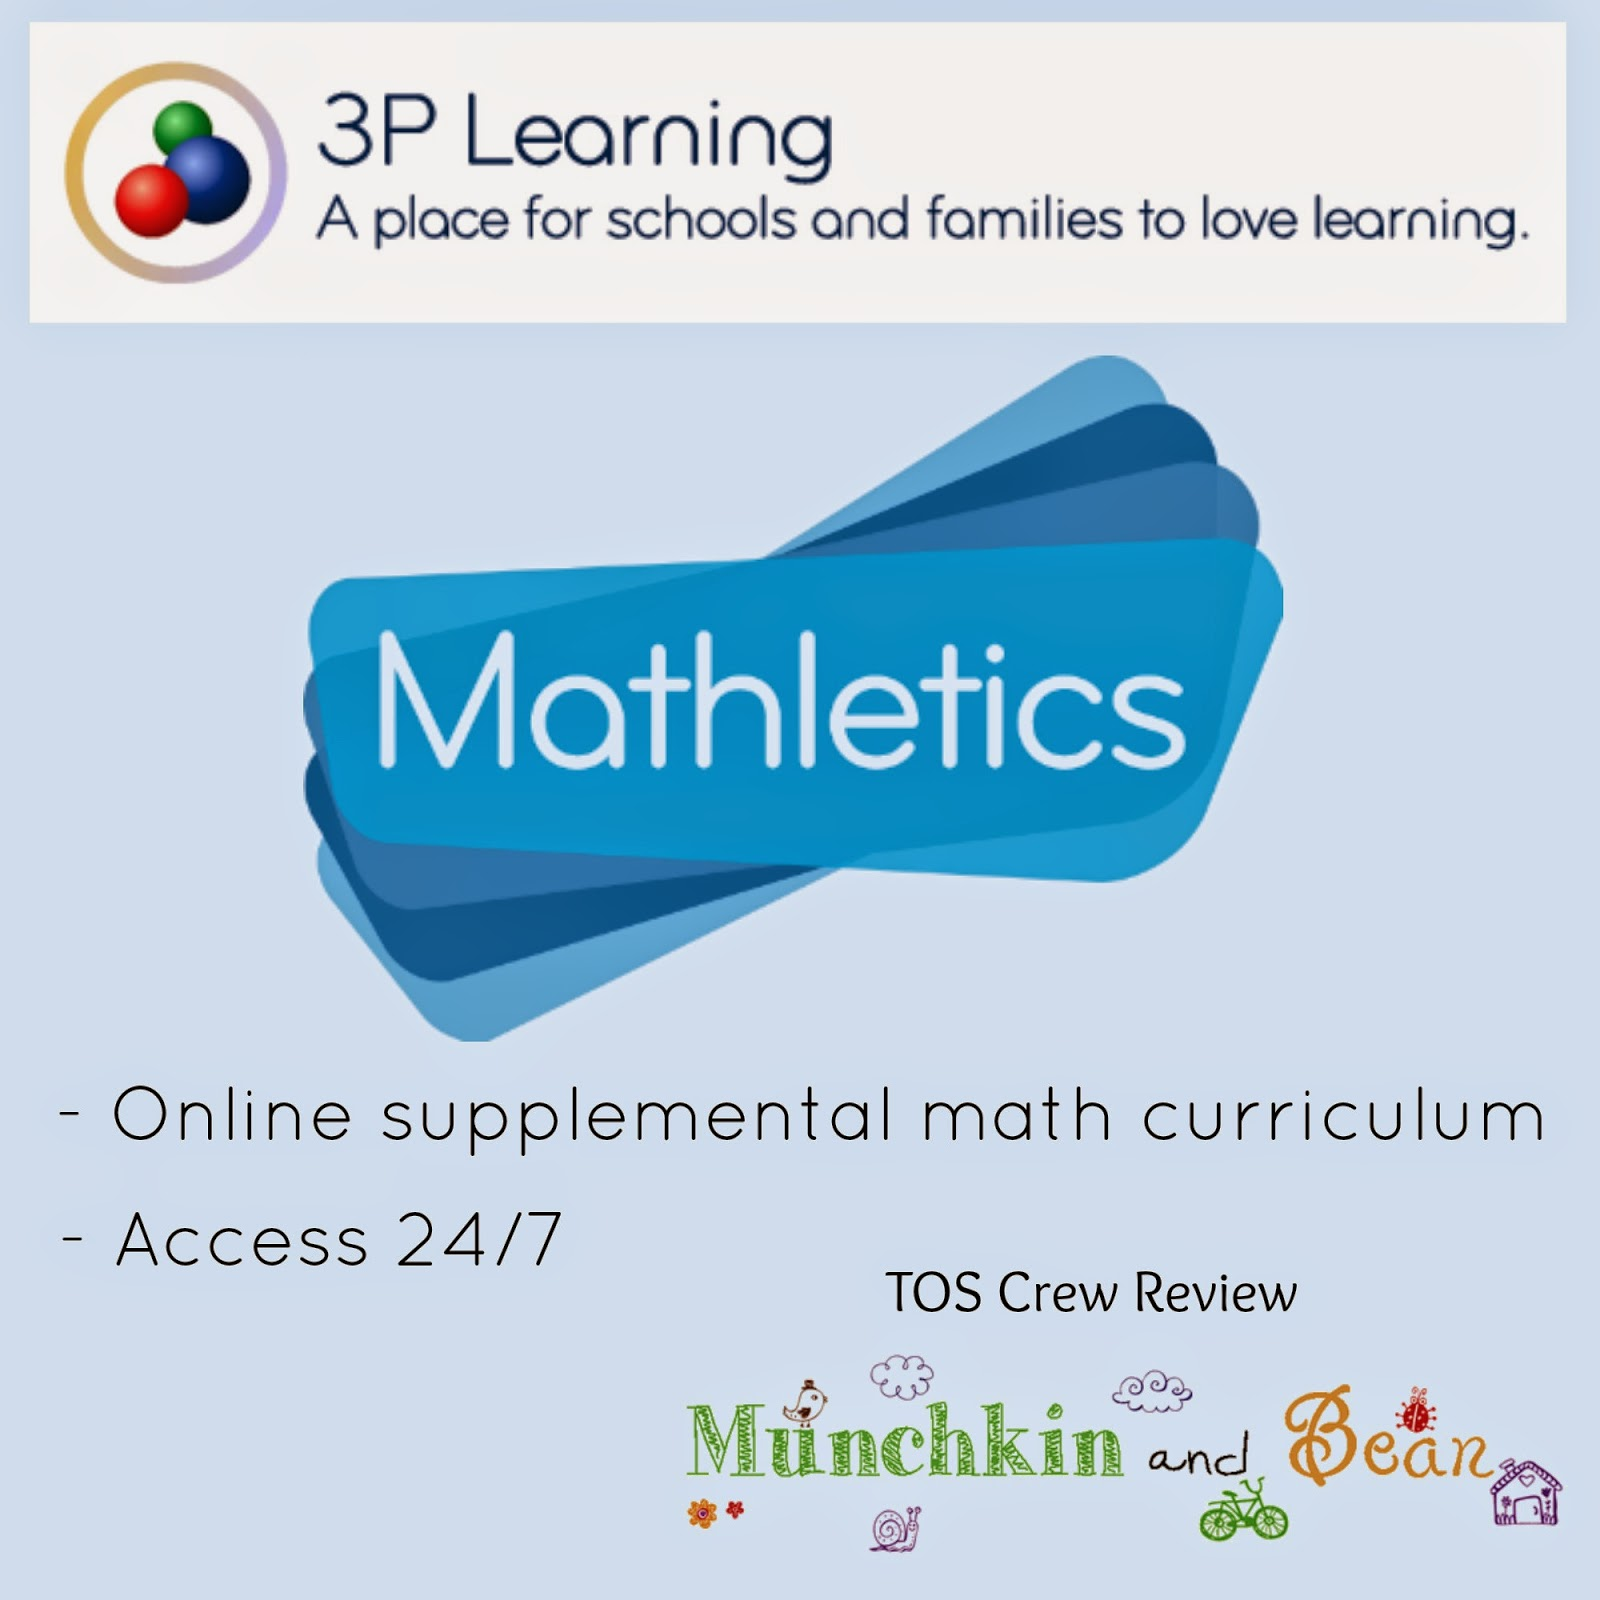 Worksheet It Online Learning Review munchkin and bean 3p learning mathletics review is an educational company that offers online programs cover a range of subjects including math spelling reading s